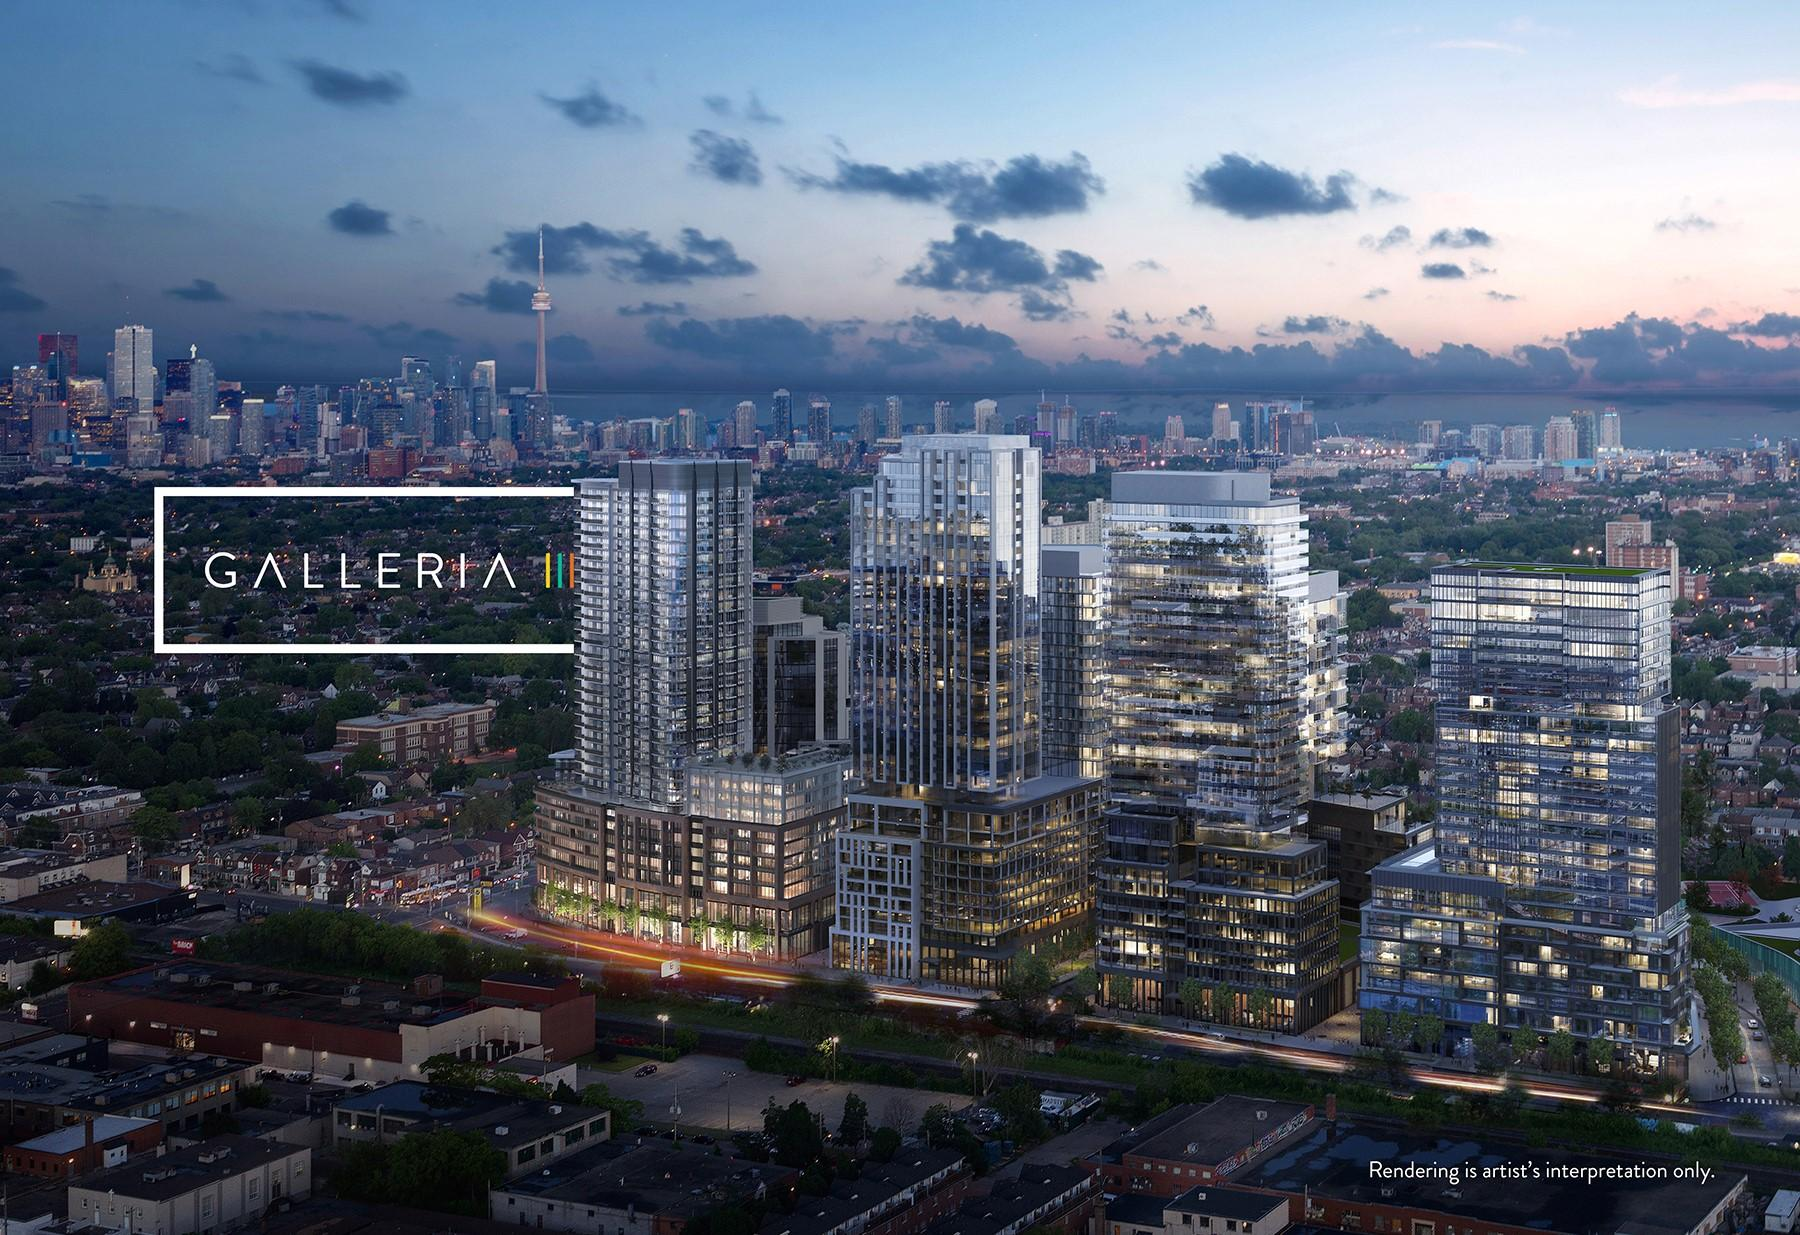 The Galleria on the park master planned community